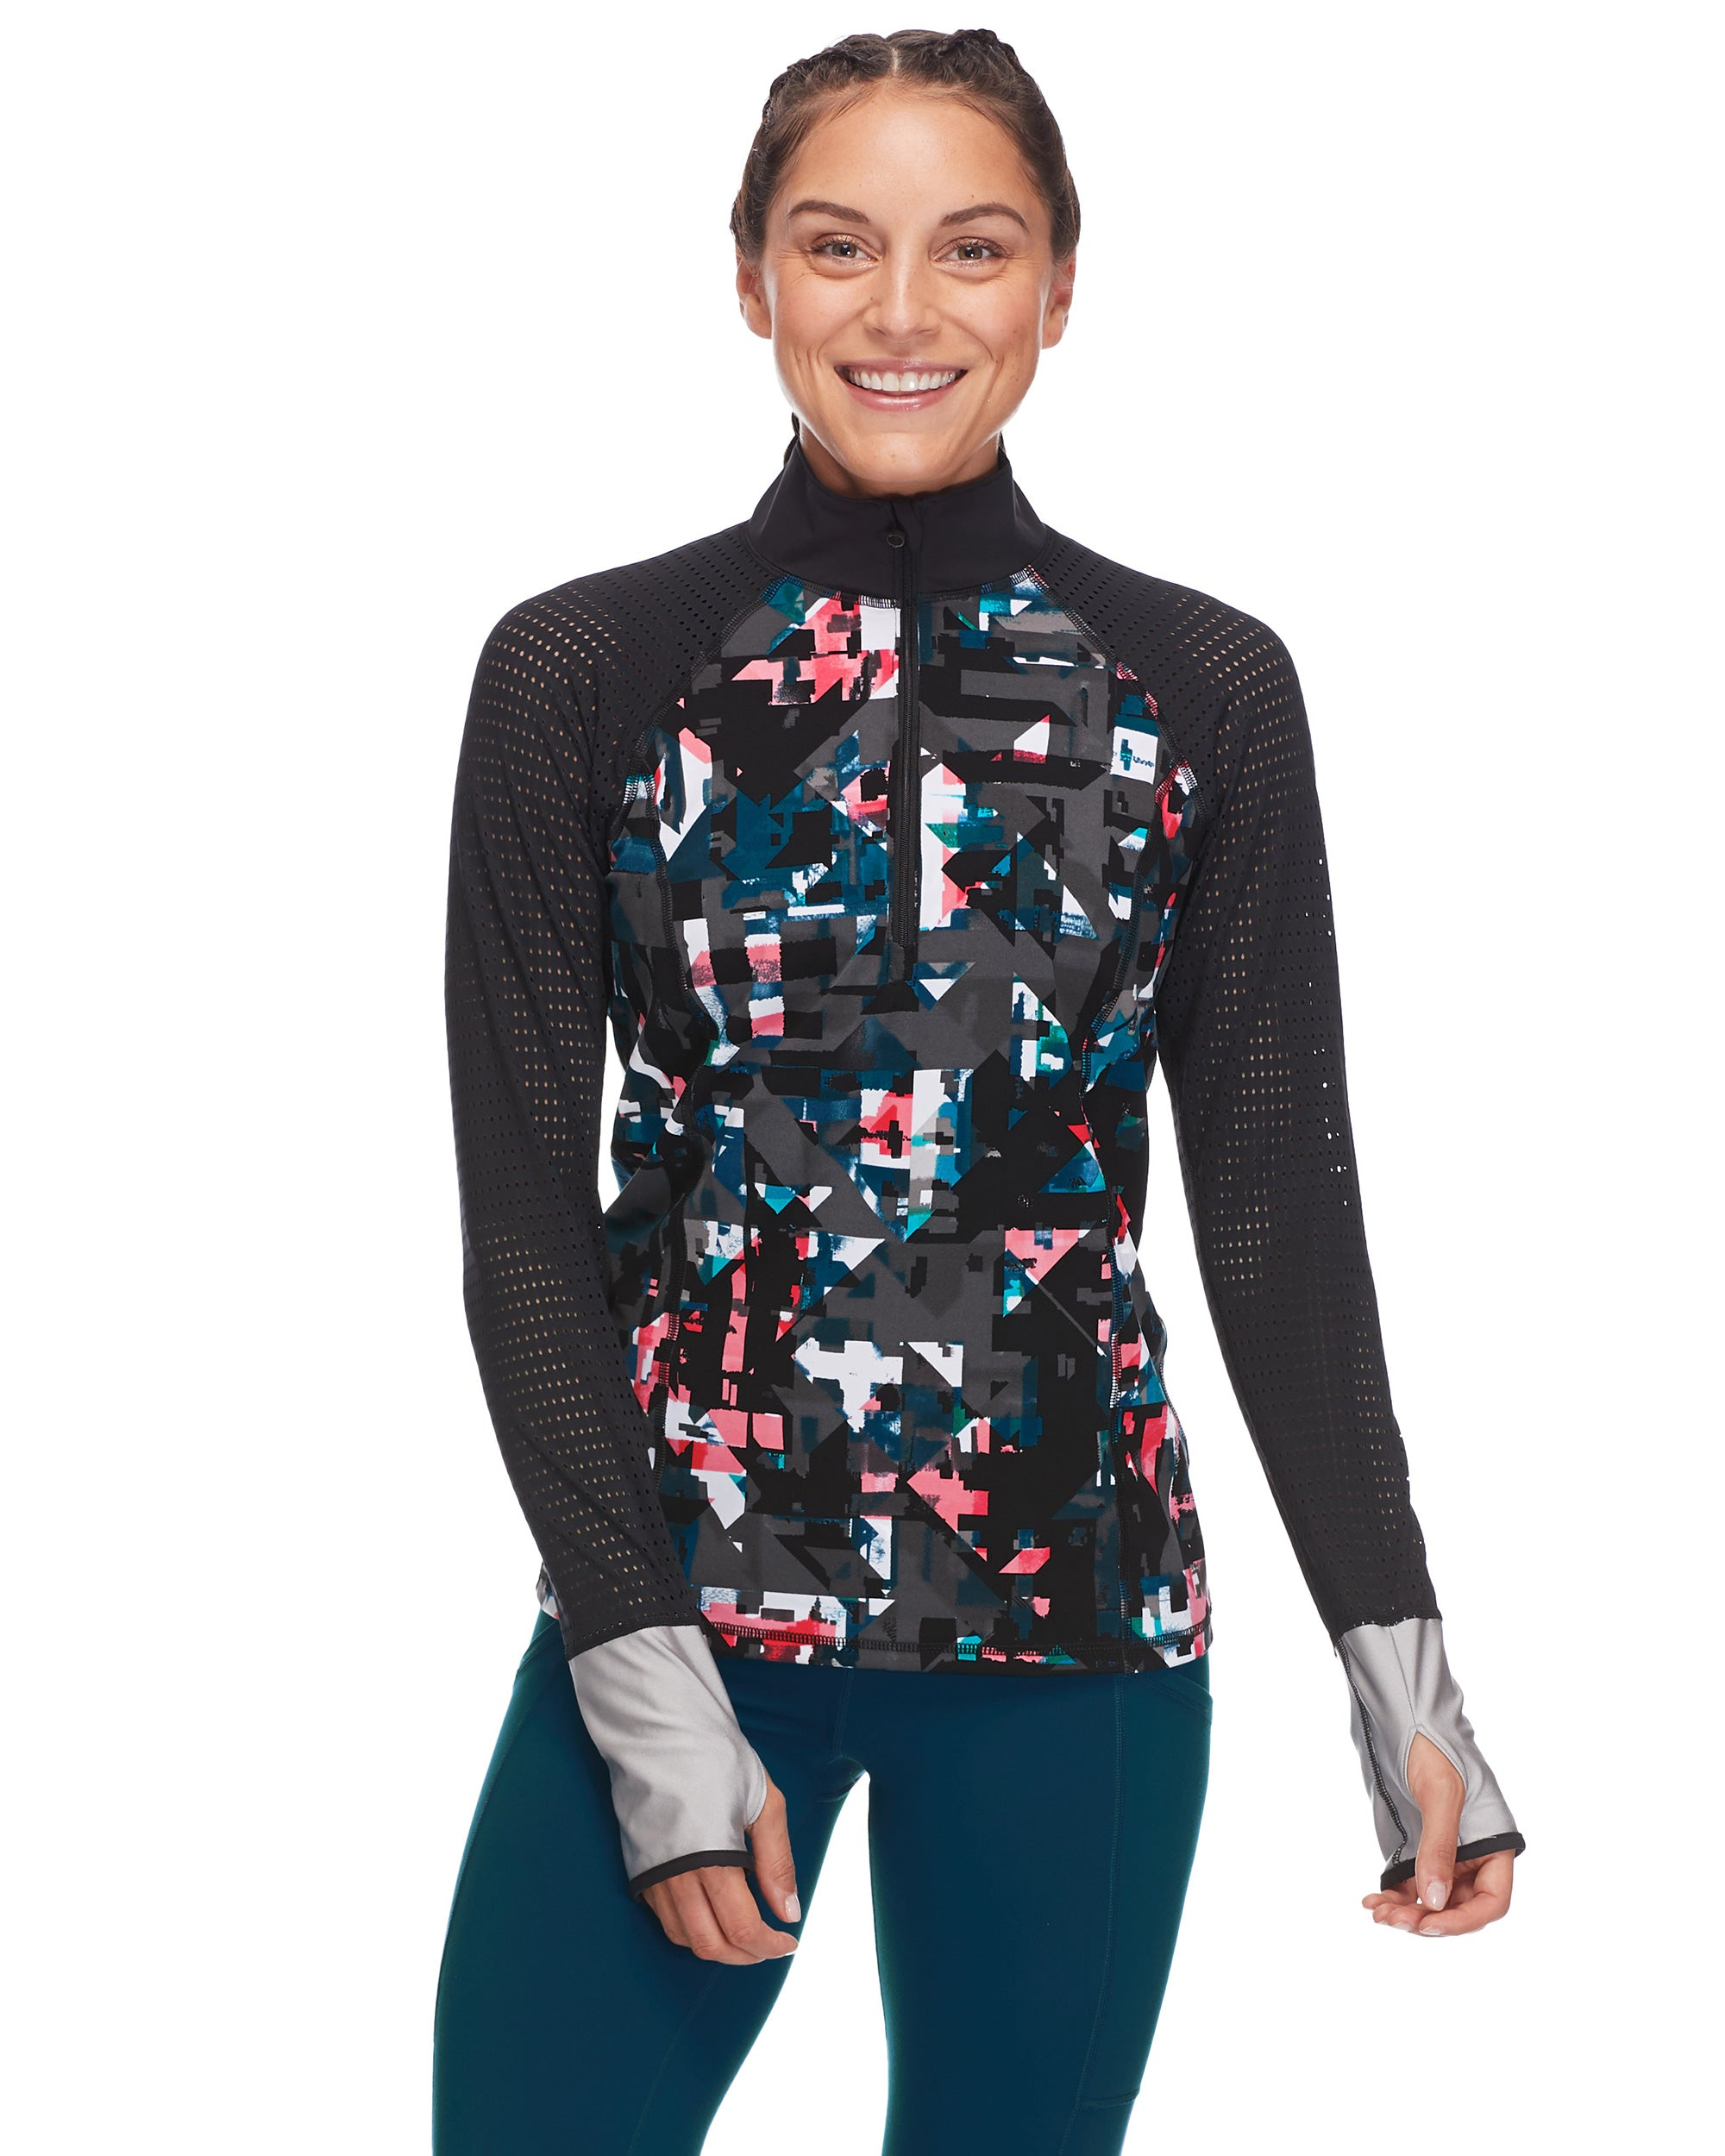 Bora Performance-Fit Long-Sleeve Top in Balboa - Black